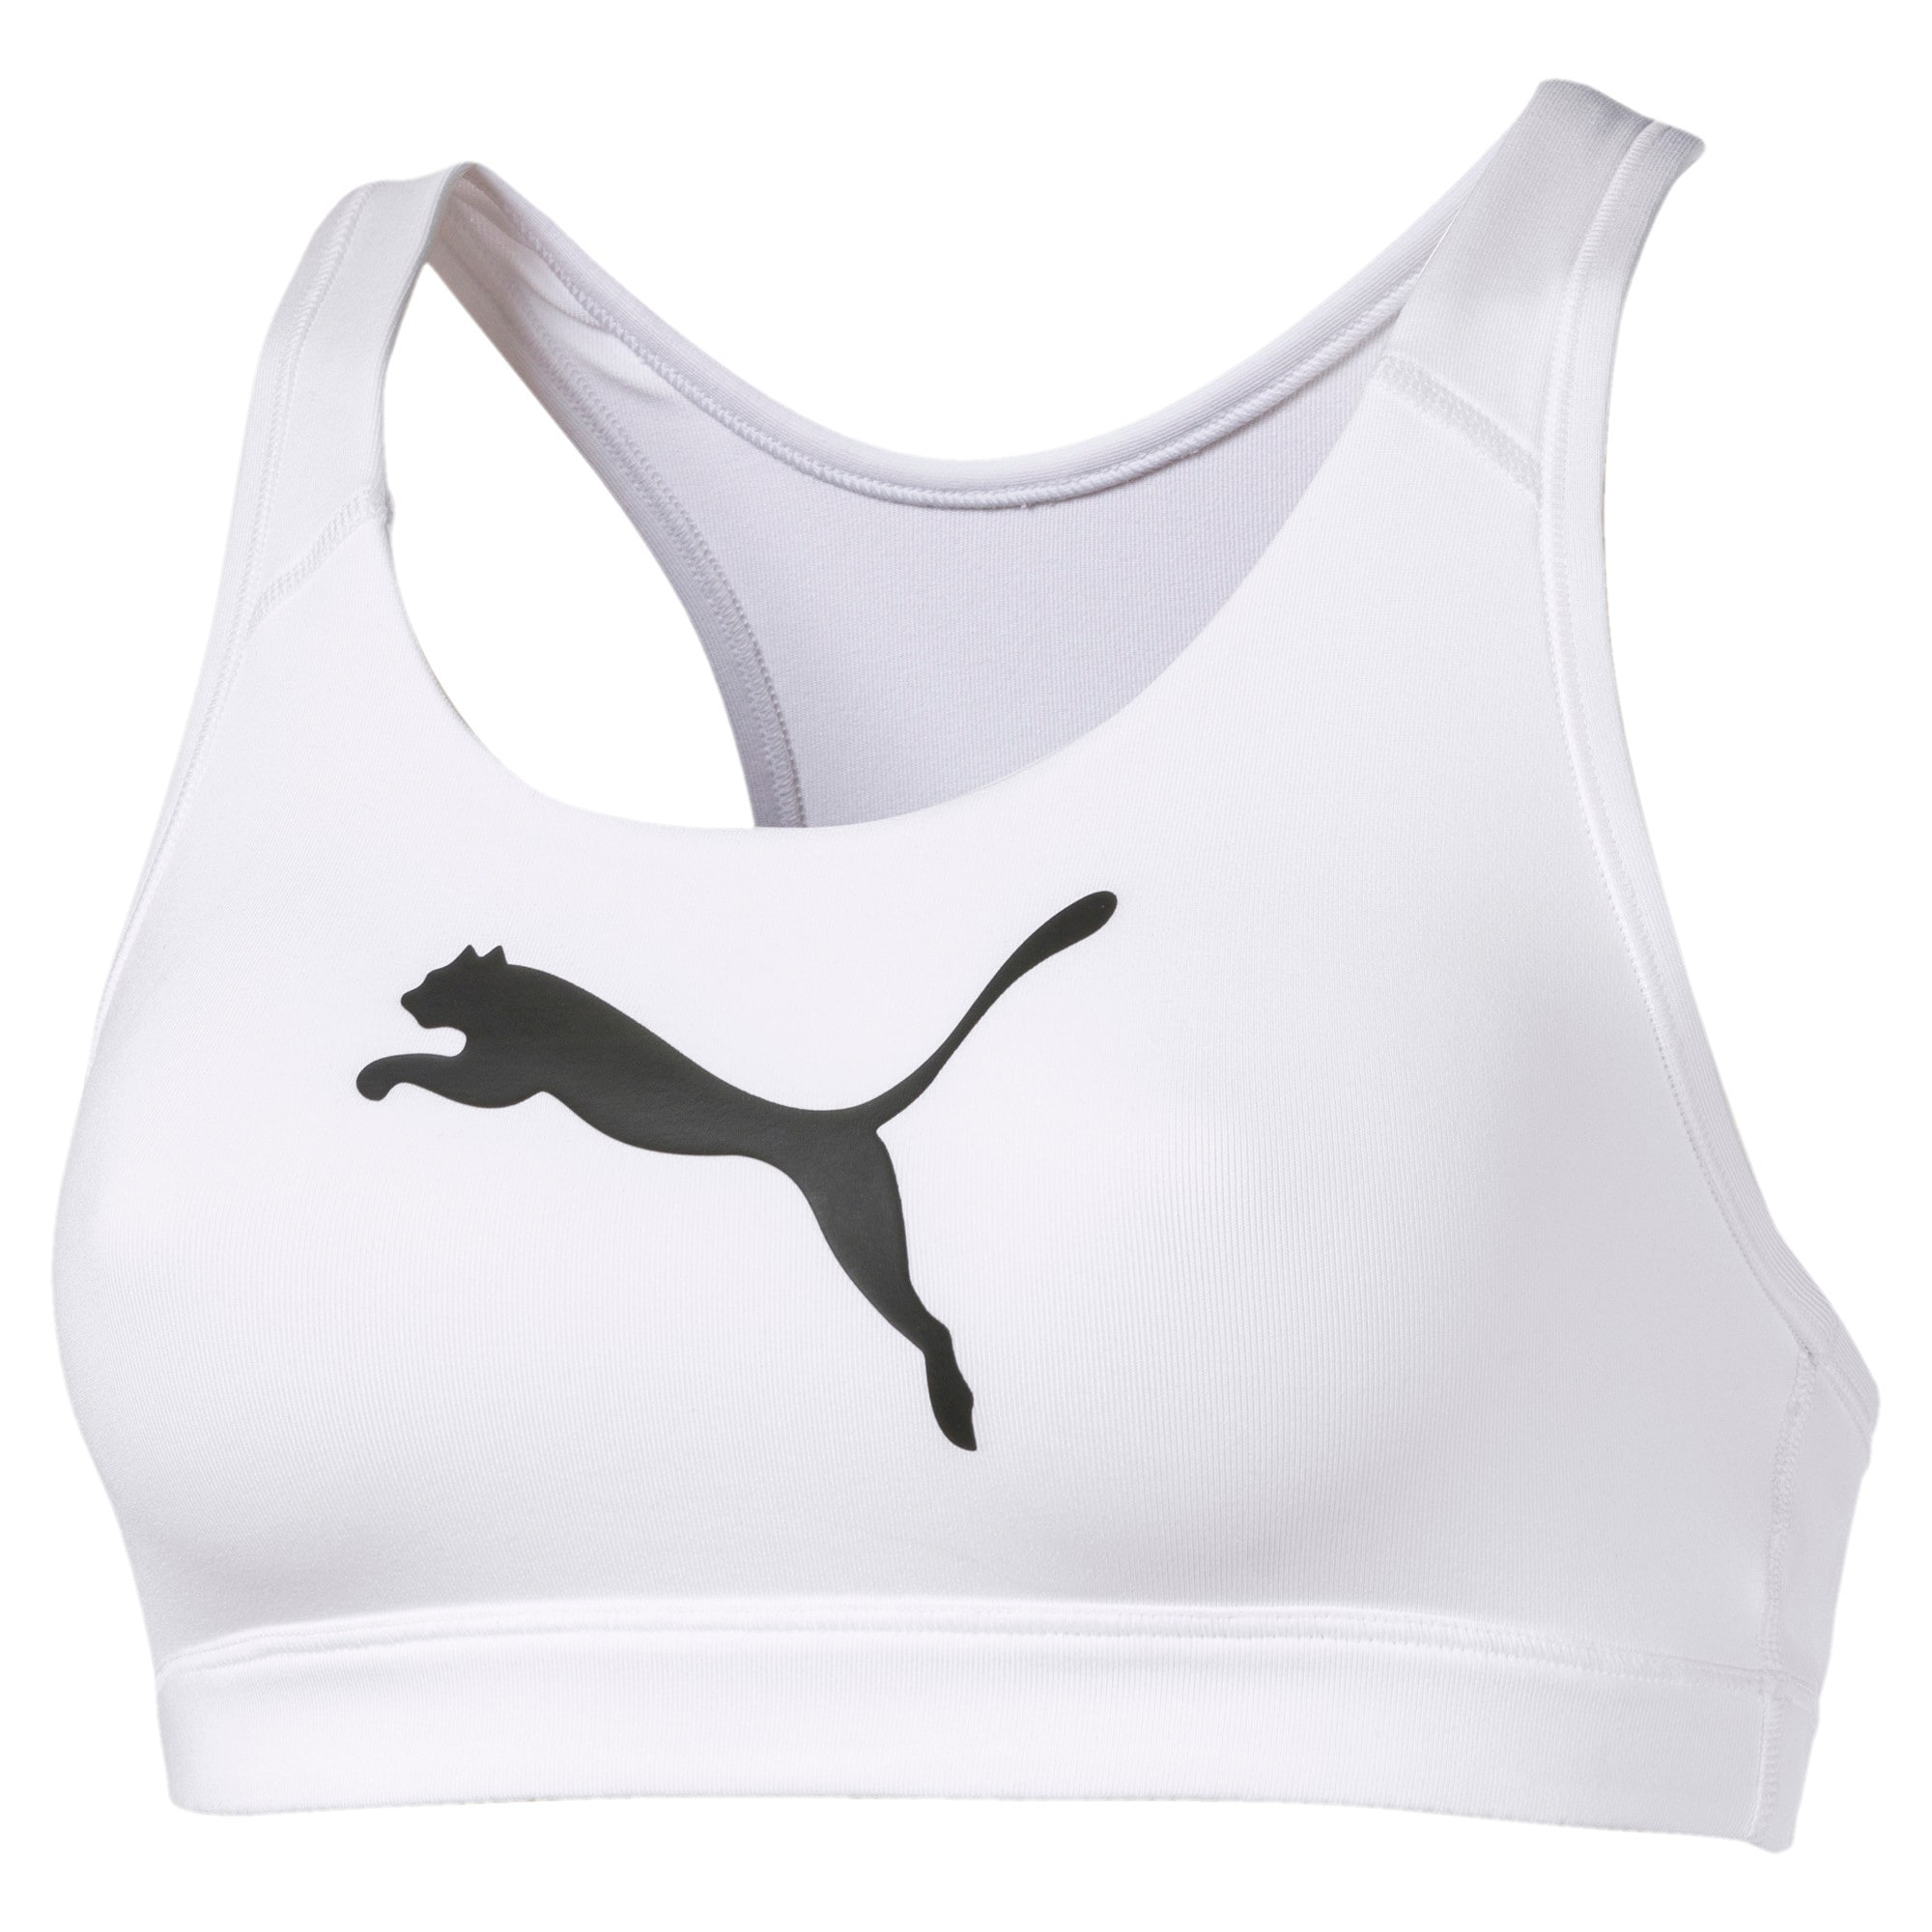 Thumbnail 2 of 4Keeps Mid Impact Women's Bra Top, Puma White-CAT, medium-IND